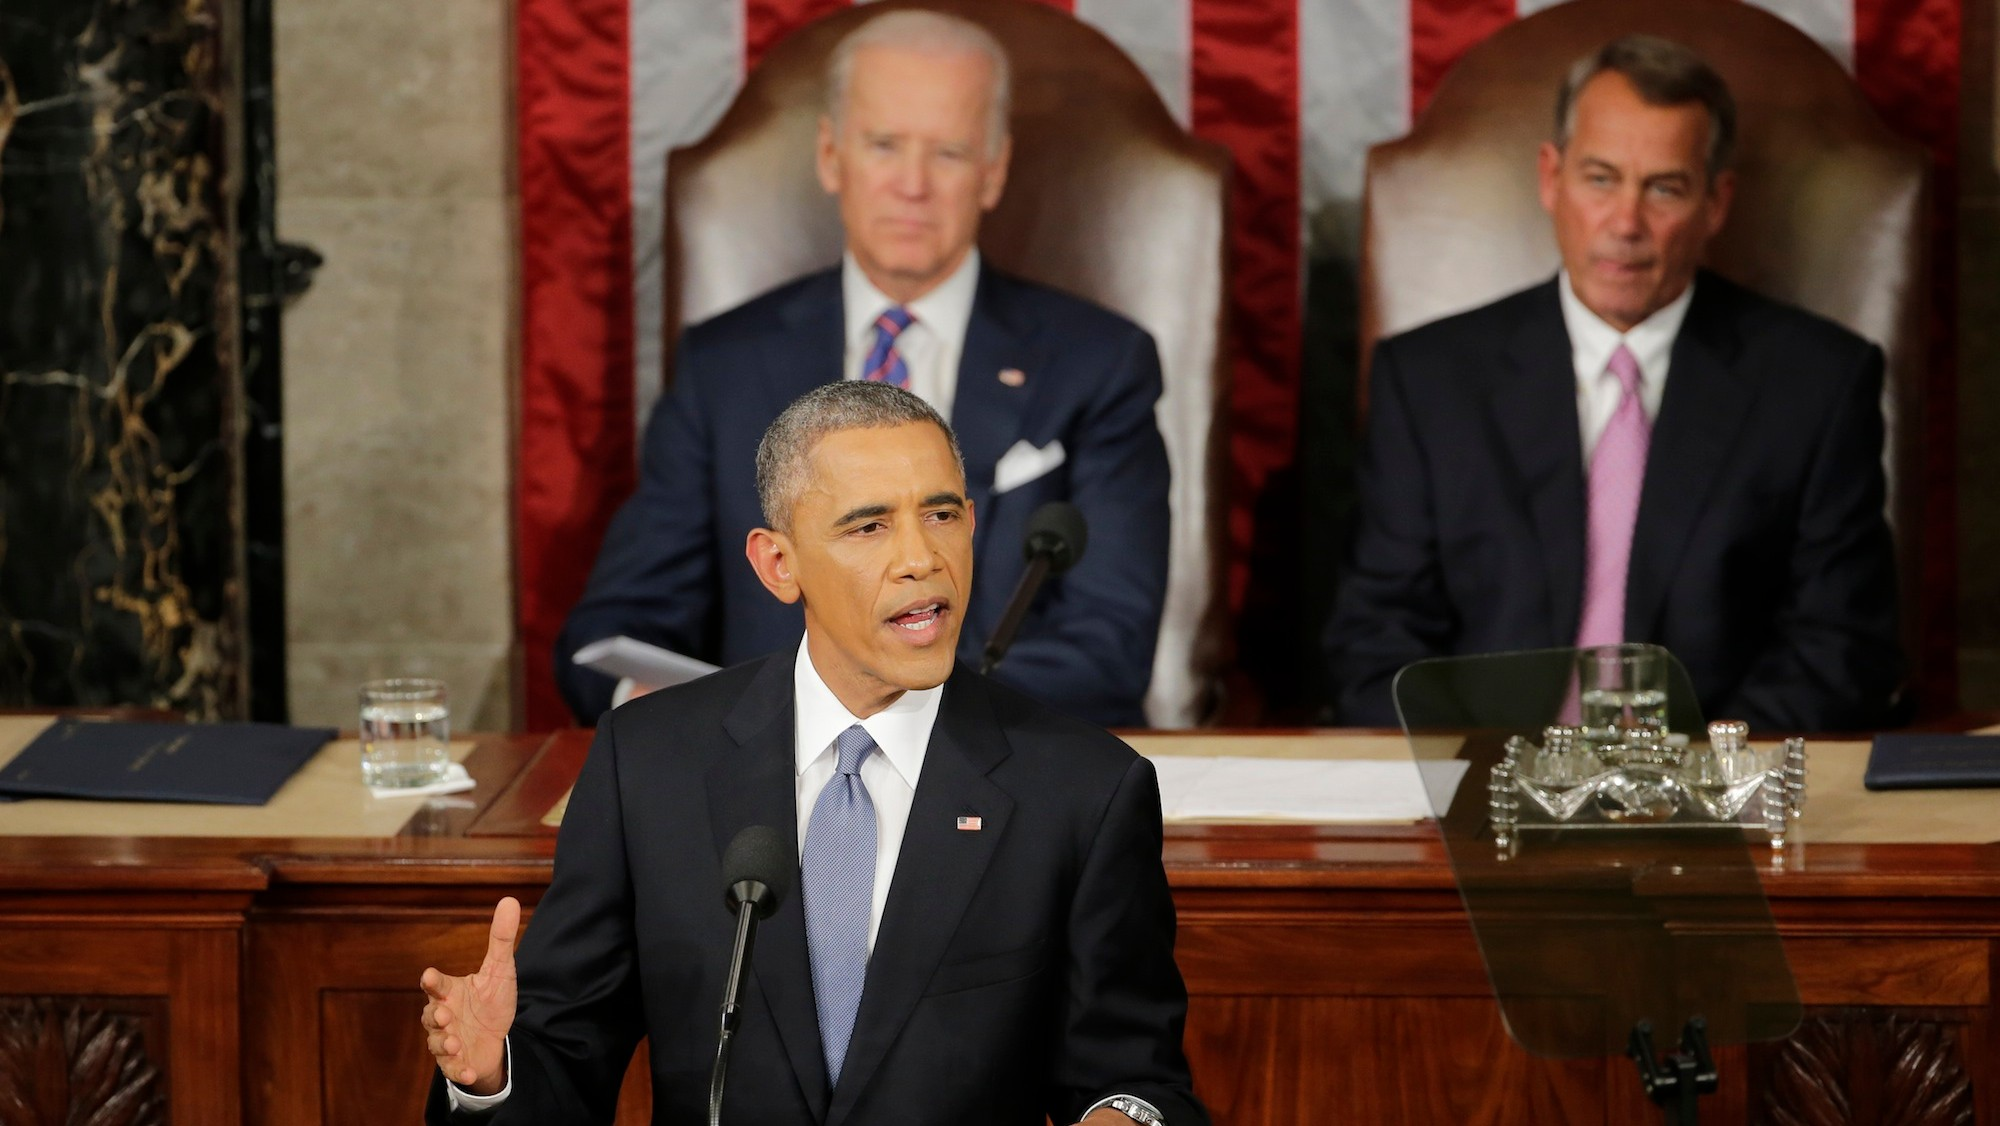 Obama's State of the Union Address: 'This Is Good News, People'